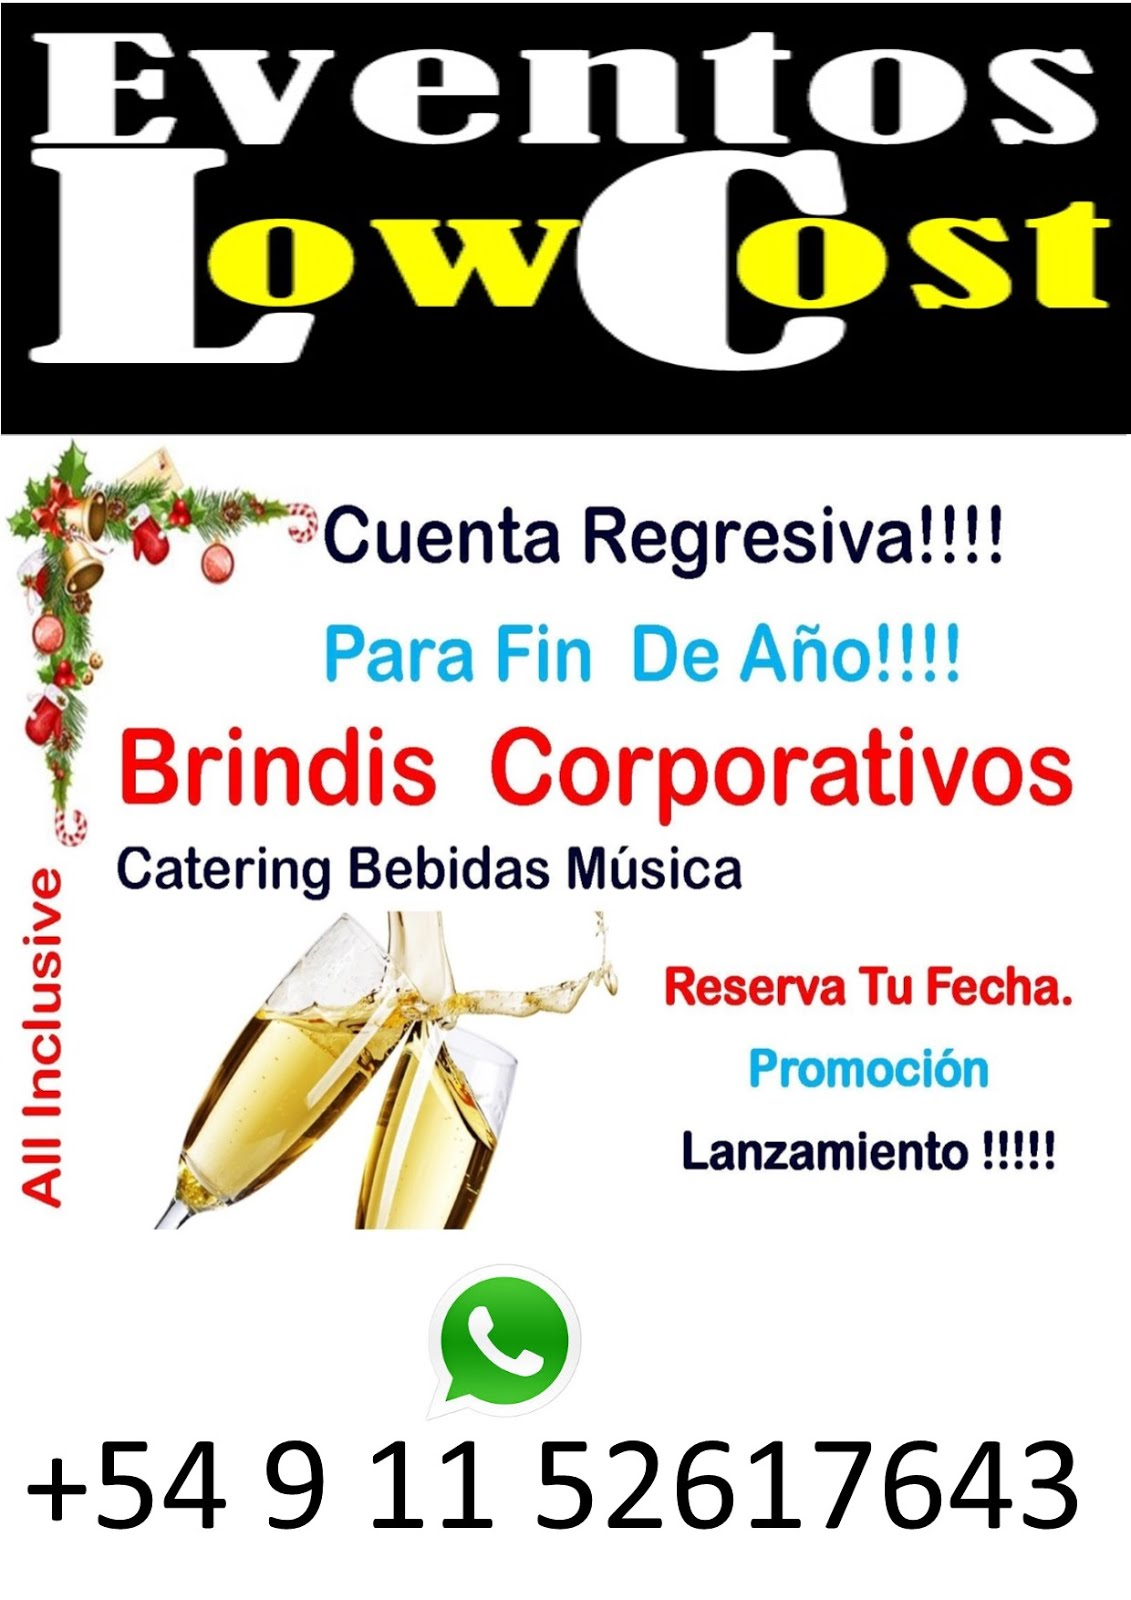 Eventos Low Cost